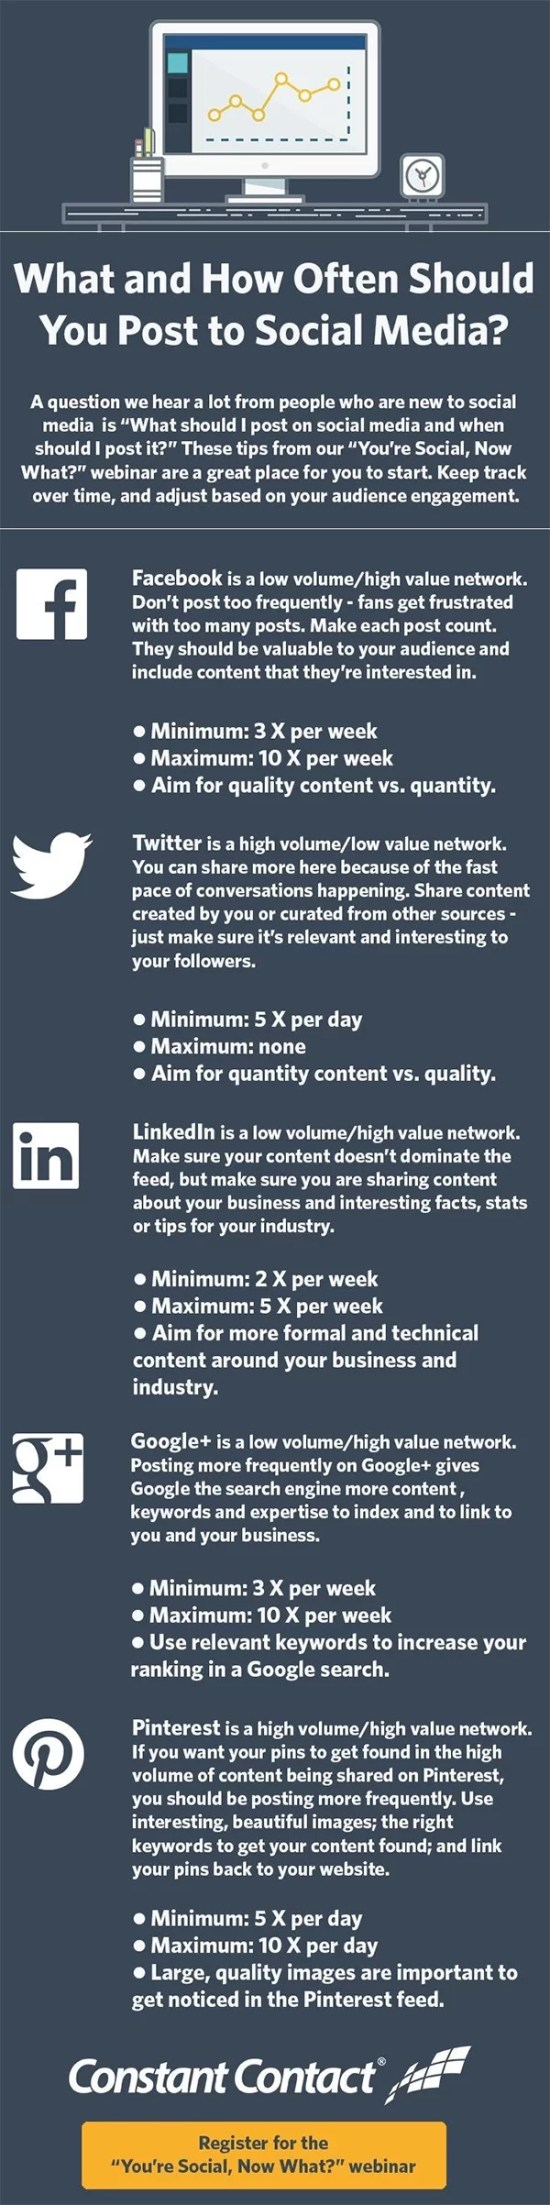 how-often-you-should-post-on-twitter-facebook-and-other-social-media-networks